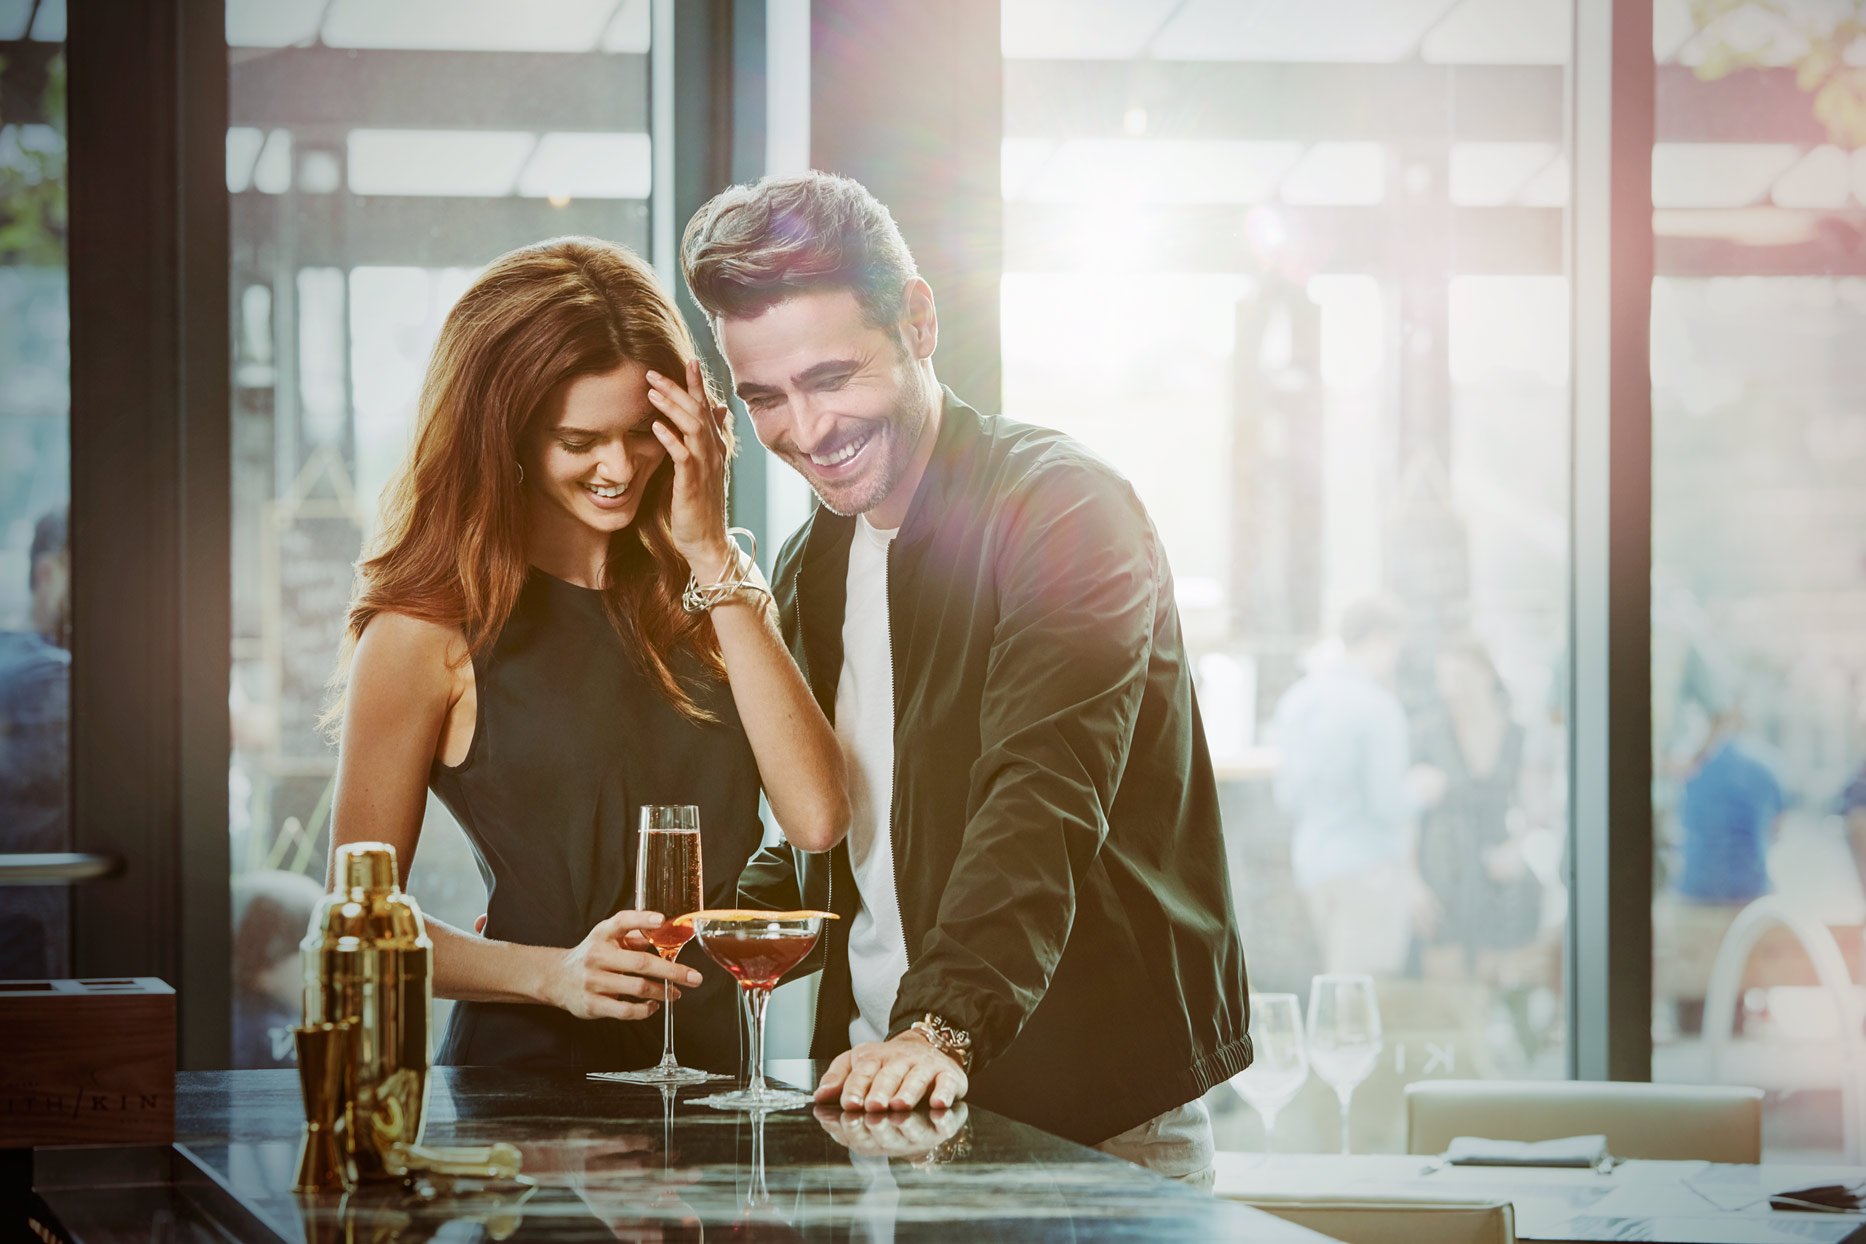 Mark DeLong - Commercial Photography - Couple drinking champagne at a bar.